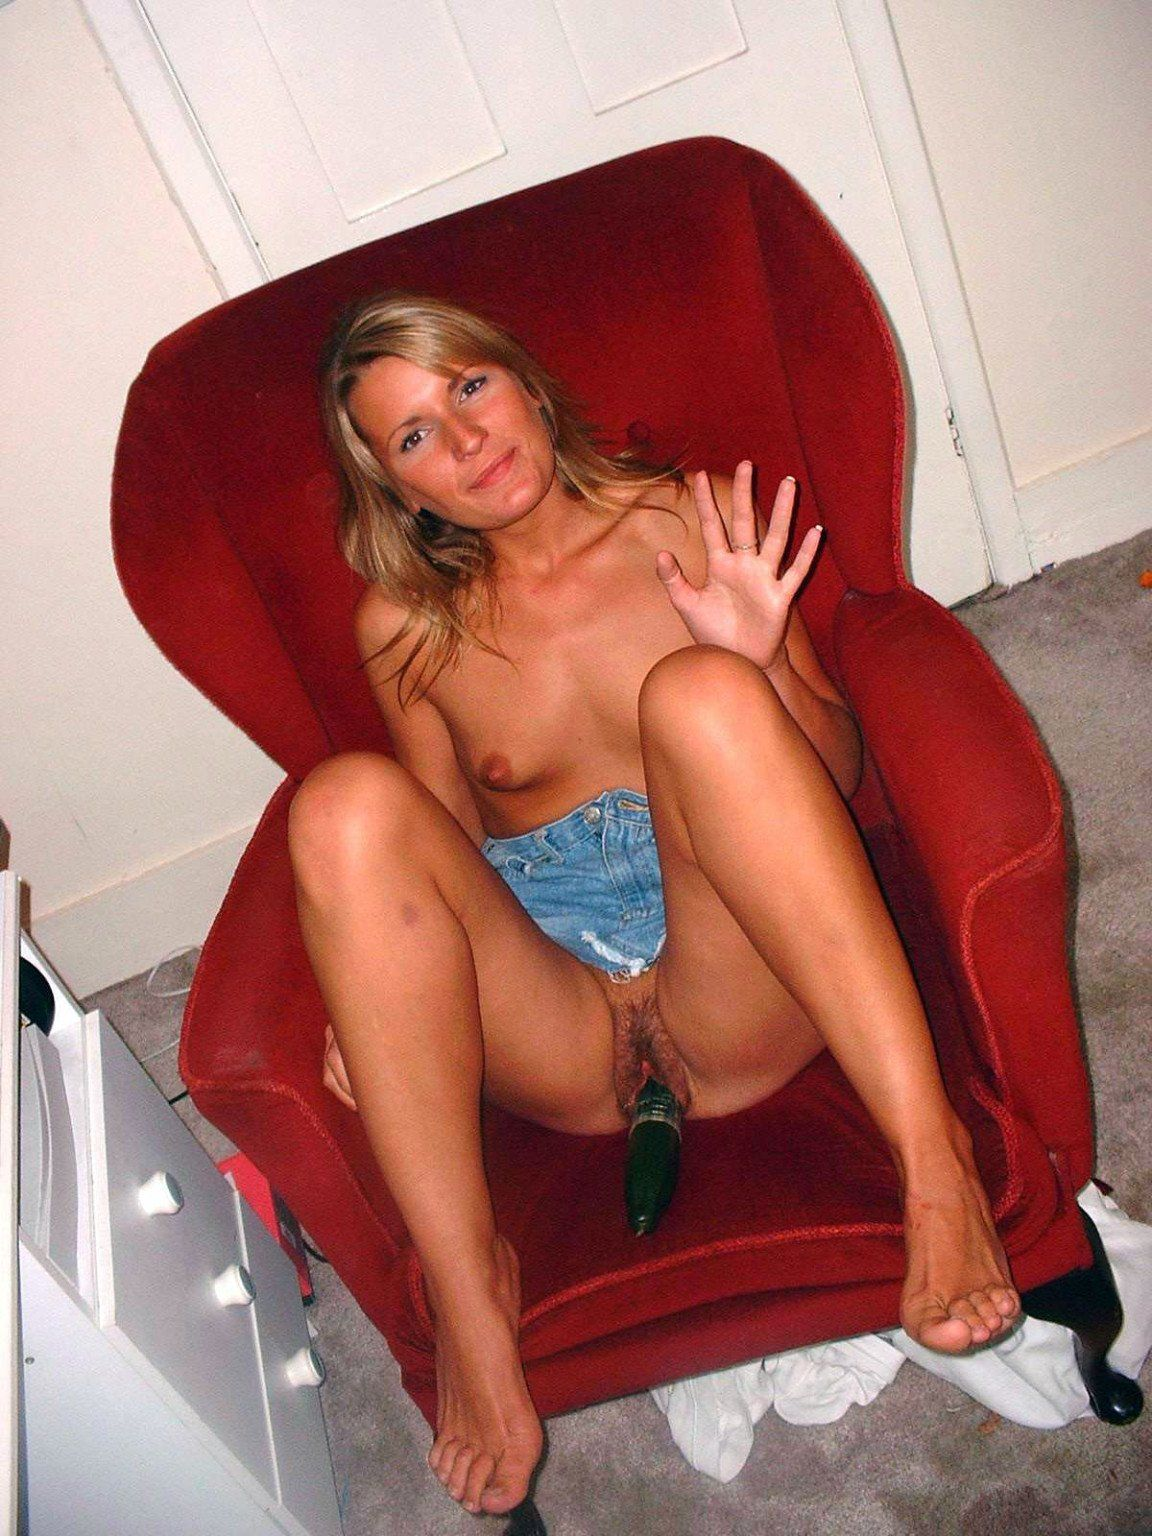 Candid Porn Galleries amateur milf candid sexy pic - sex photos free.